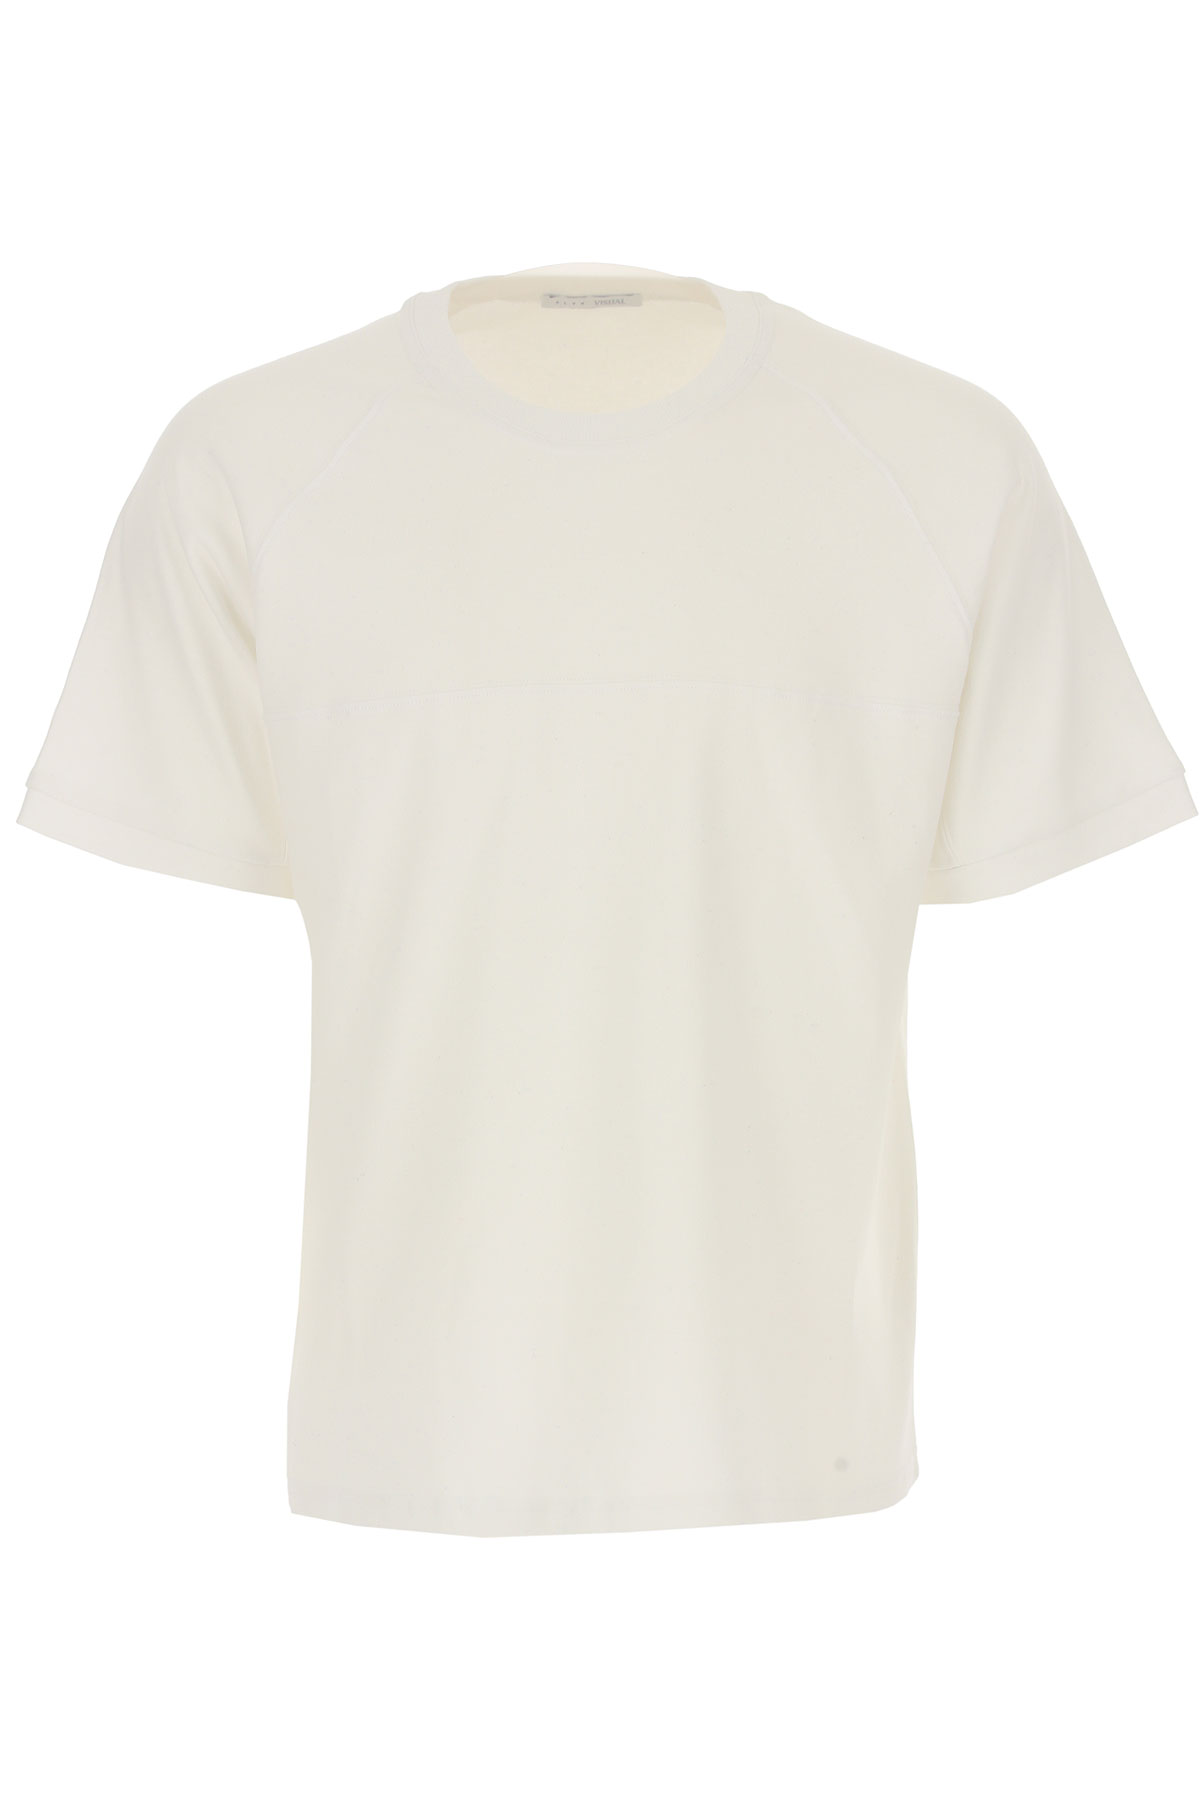 ALYX T-Shirt for Men On Sale in Outlet, White, Cotton, 2019, L M S XS